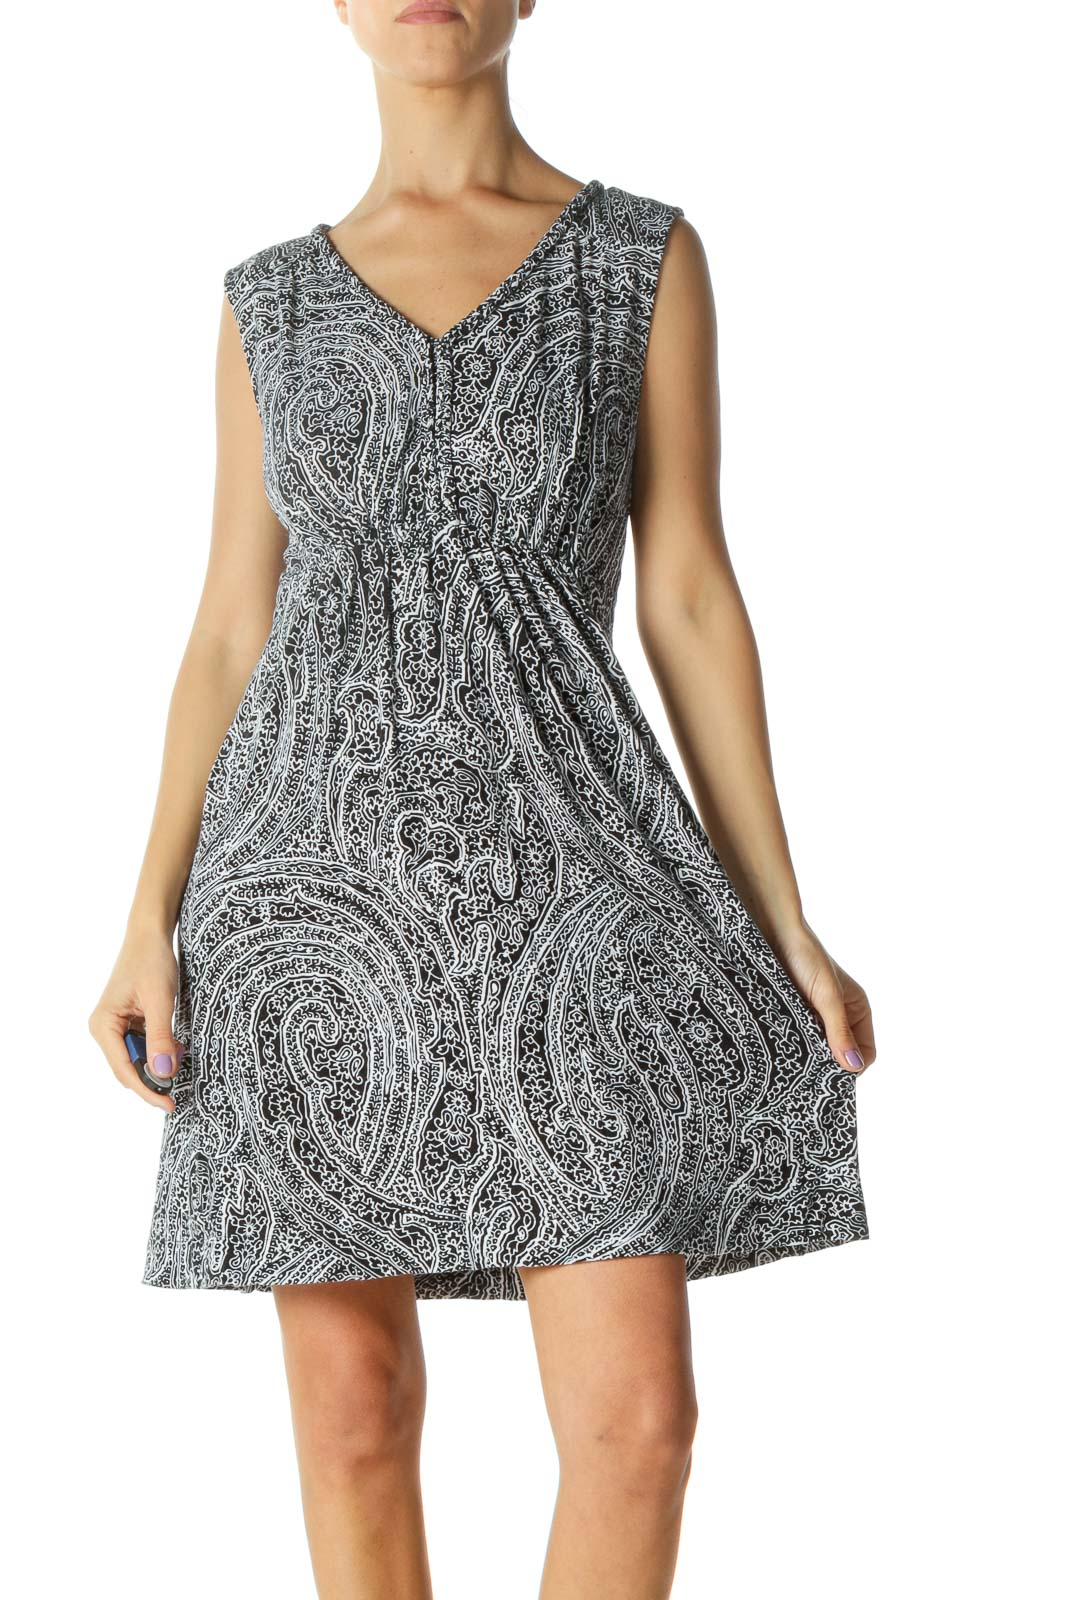 Black and White Print Day Dress Front